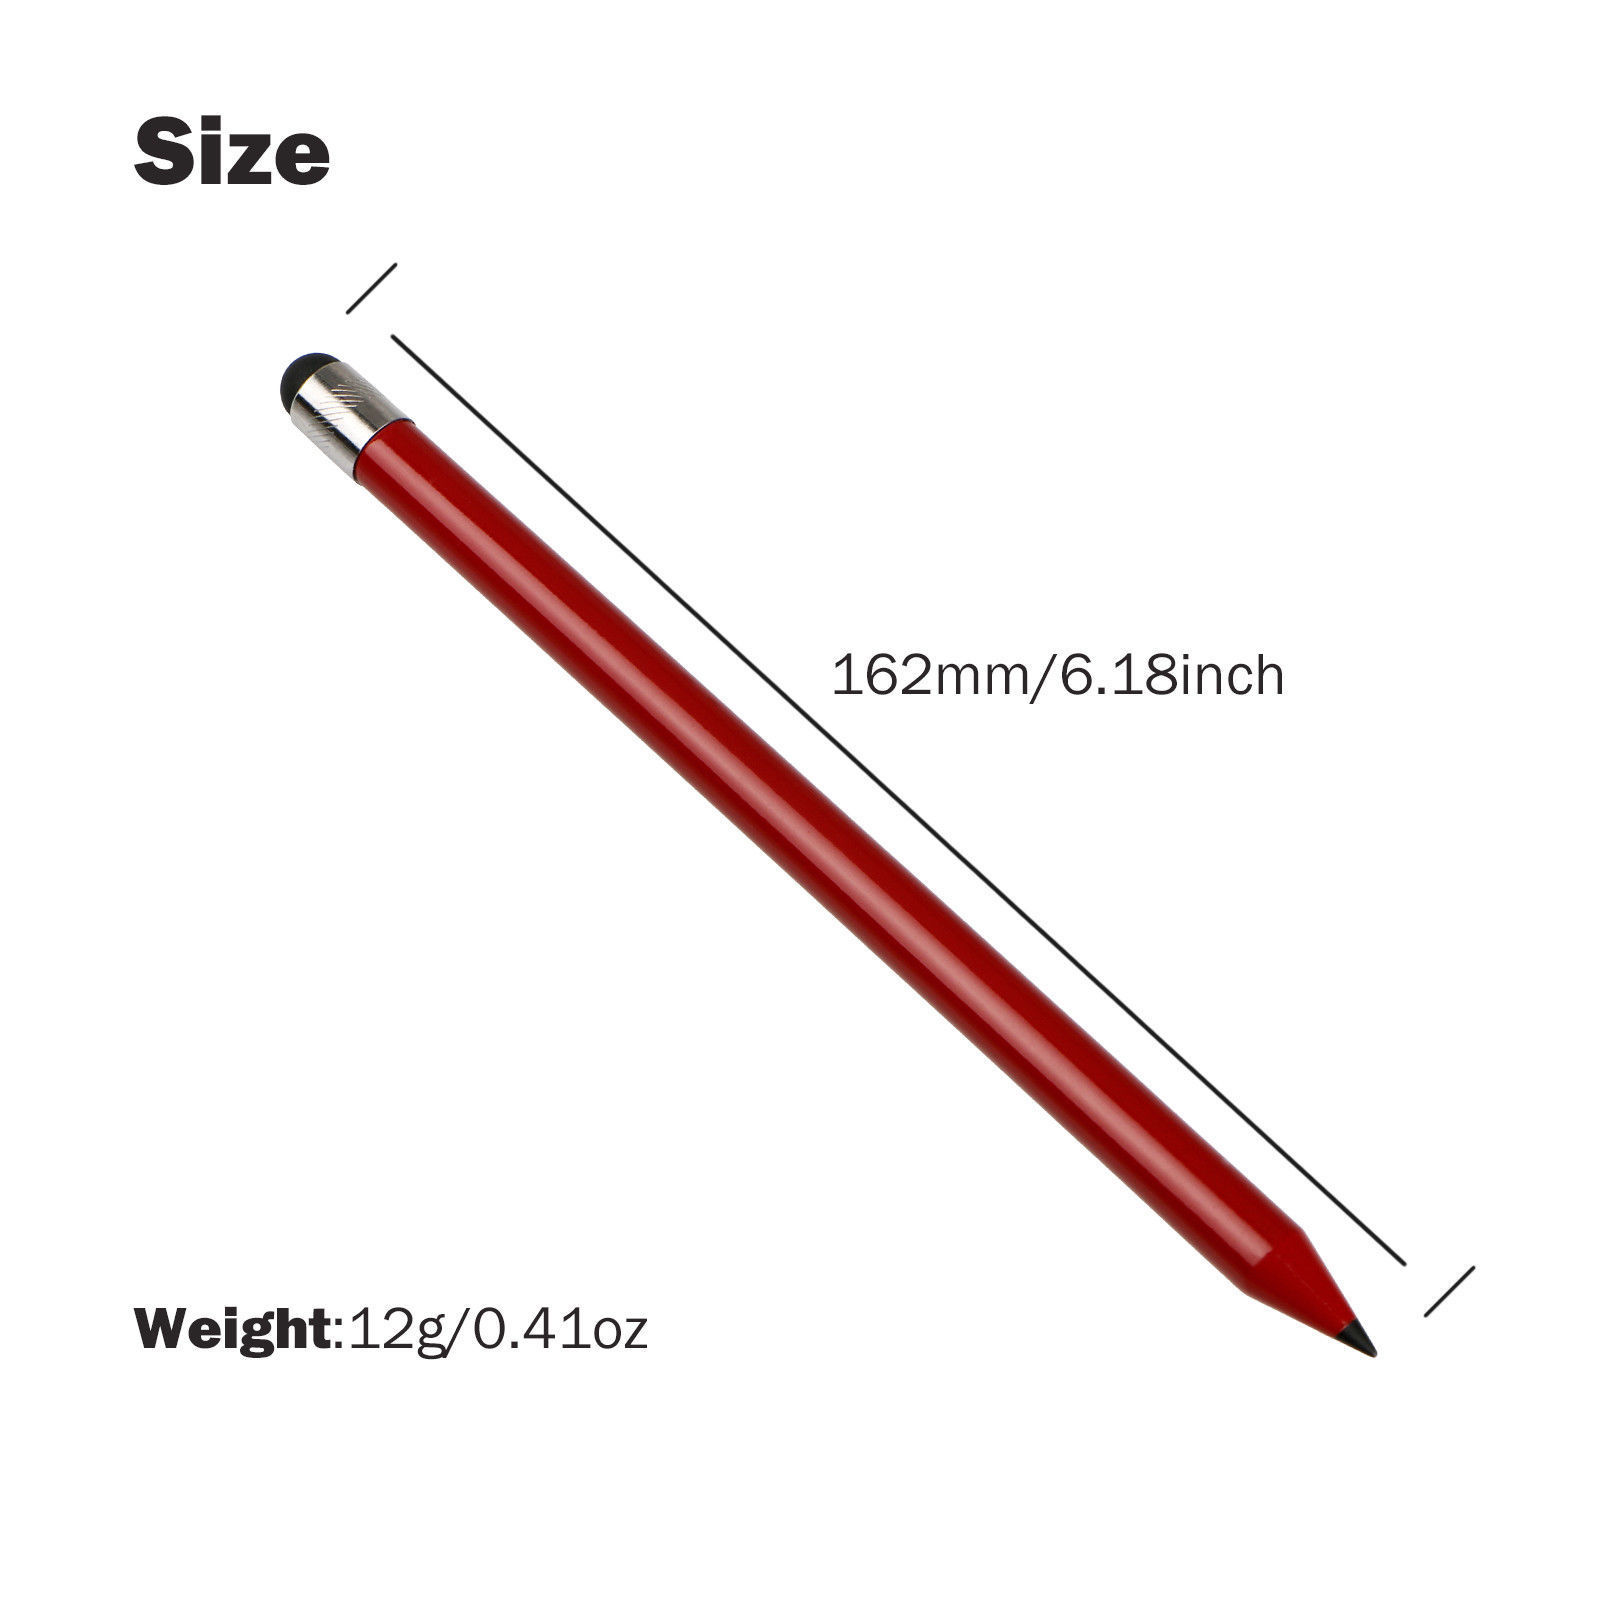 Capacitive-Pen-Touch-Screen-Stylus-Pencil-for-Tablet-iPad-Cell-Phone-Samsung-PC thumbnail 11